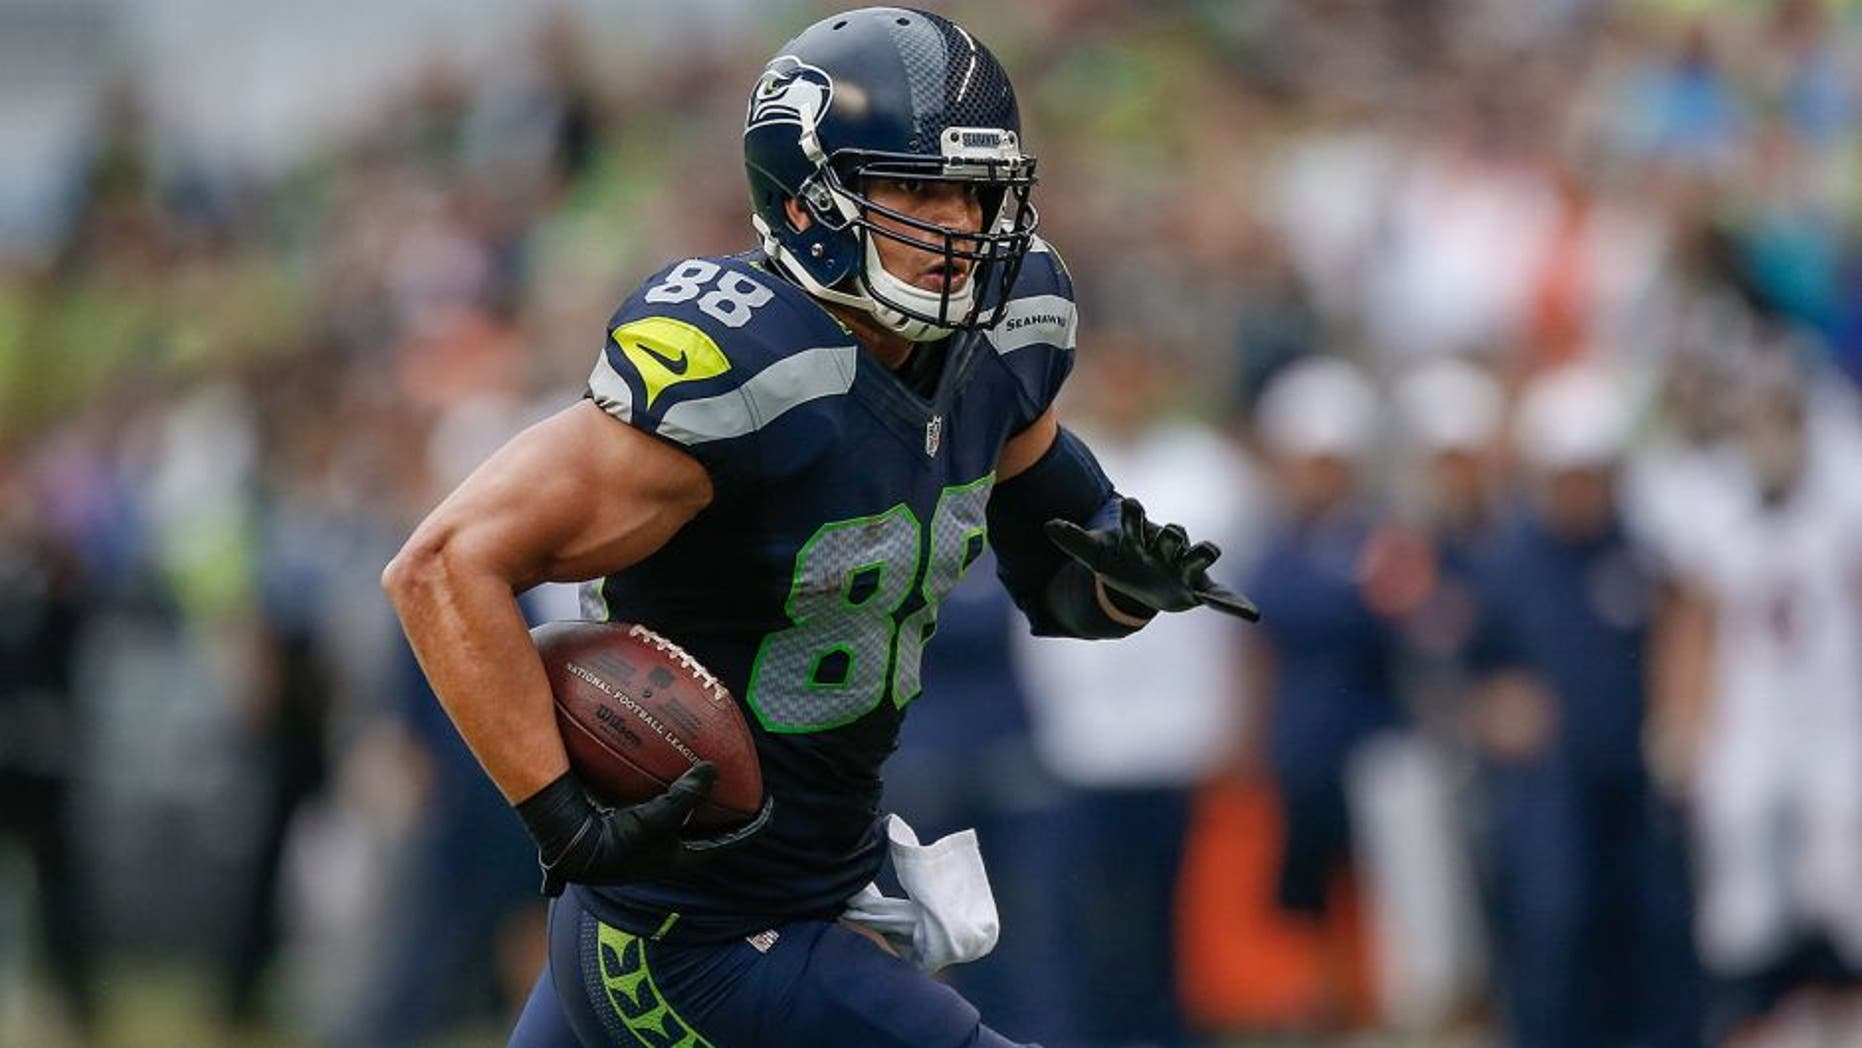 SEATTLE, WA - AUGUST 14: Tight end Jimmy Graham #88 of the Seattle Seahawks rushes against the Denver Broncos at CenturyLink Field on August 14, 2015 in Seattle, Washington. (Photo by Otto Greule Jr/Getty Images)